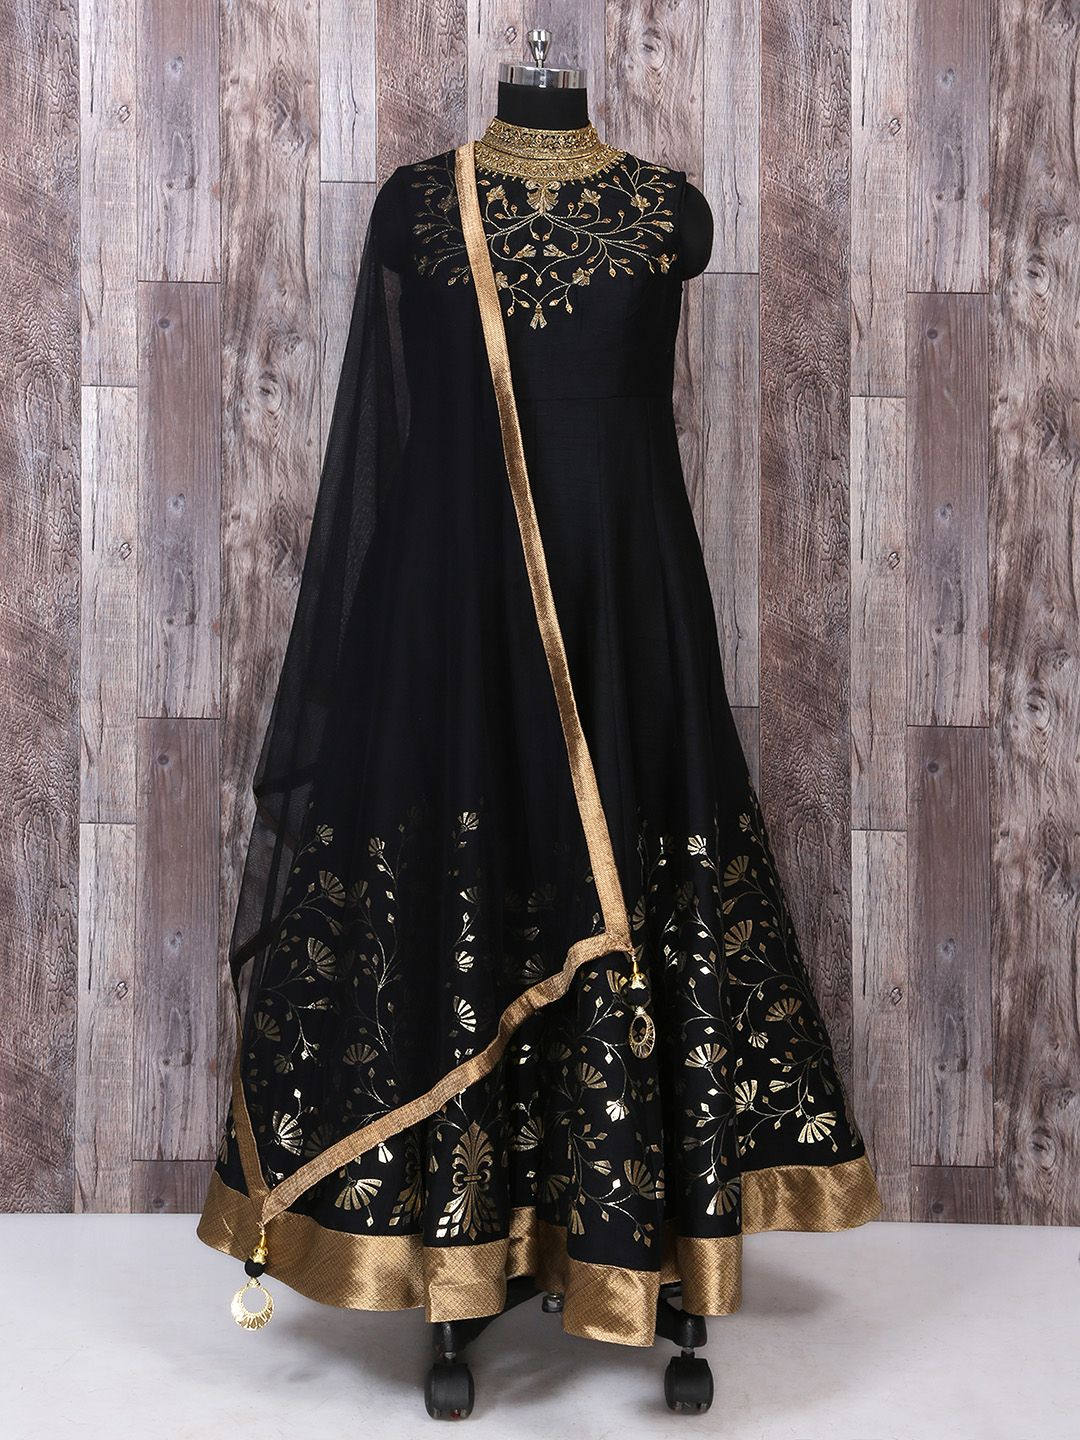 Anarkali Suit In Black Color For Party Function Designer Suit Party Wear Indian Fashion Fas Party Dresses For Women Party Wear Maxi Dresses Gown Party Wear